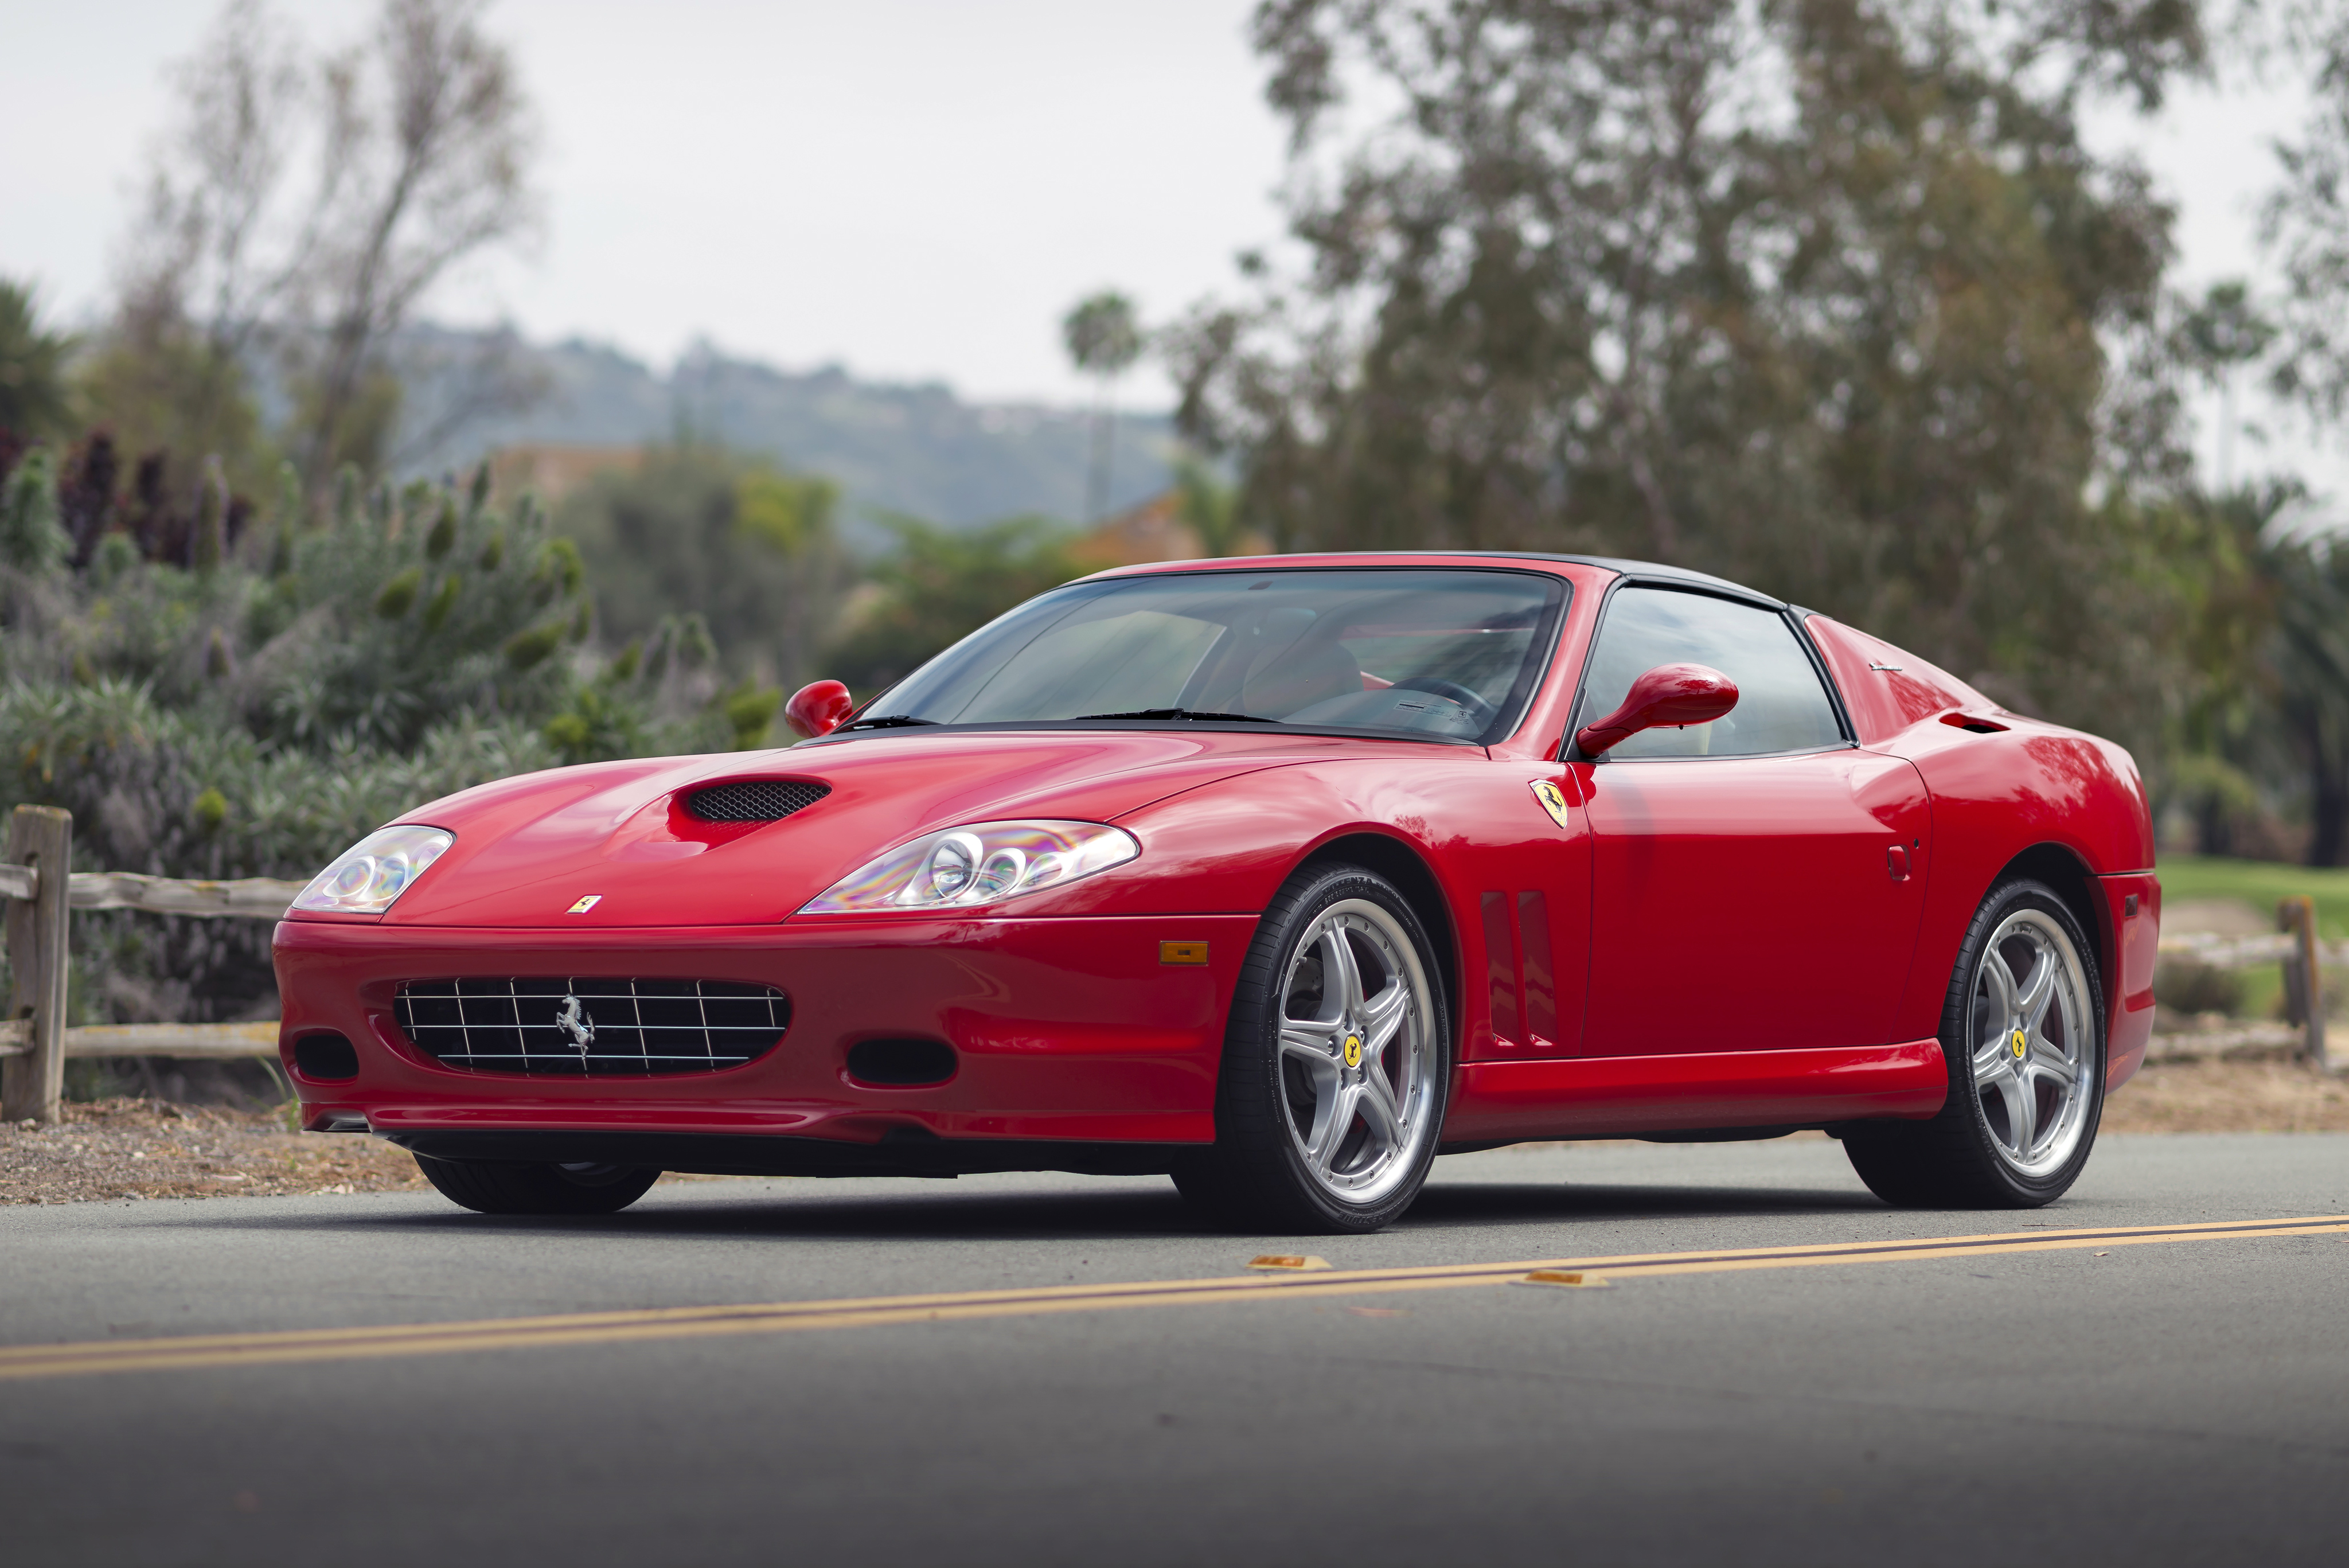 133250 download wallpaper Cars, Ferrari, Superamerica, F1, Side View screensavers and pictures for free